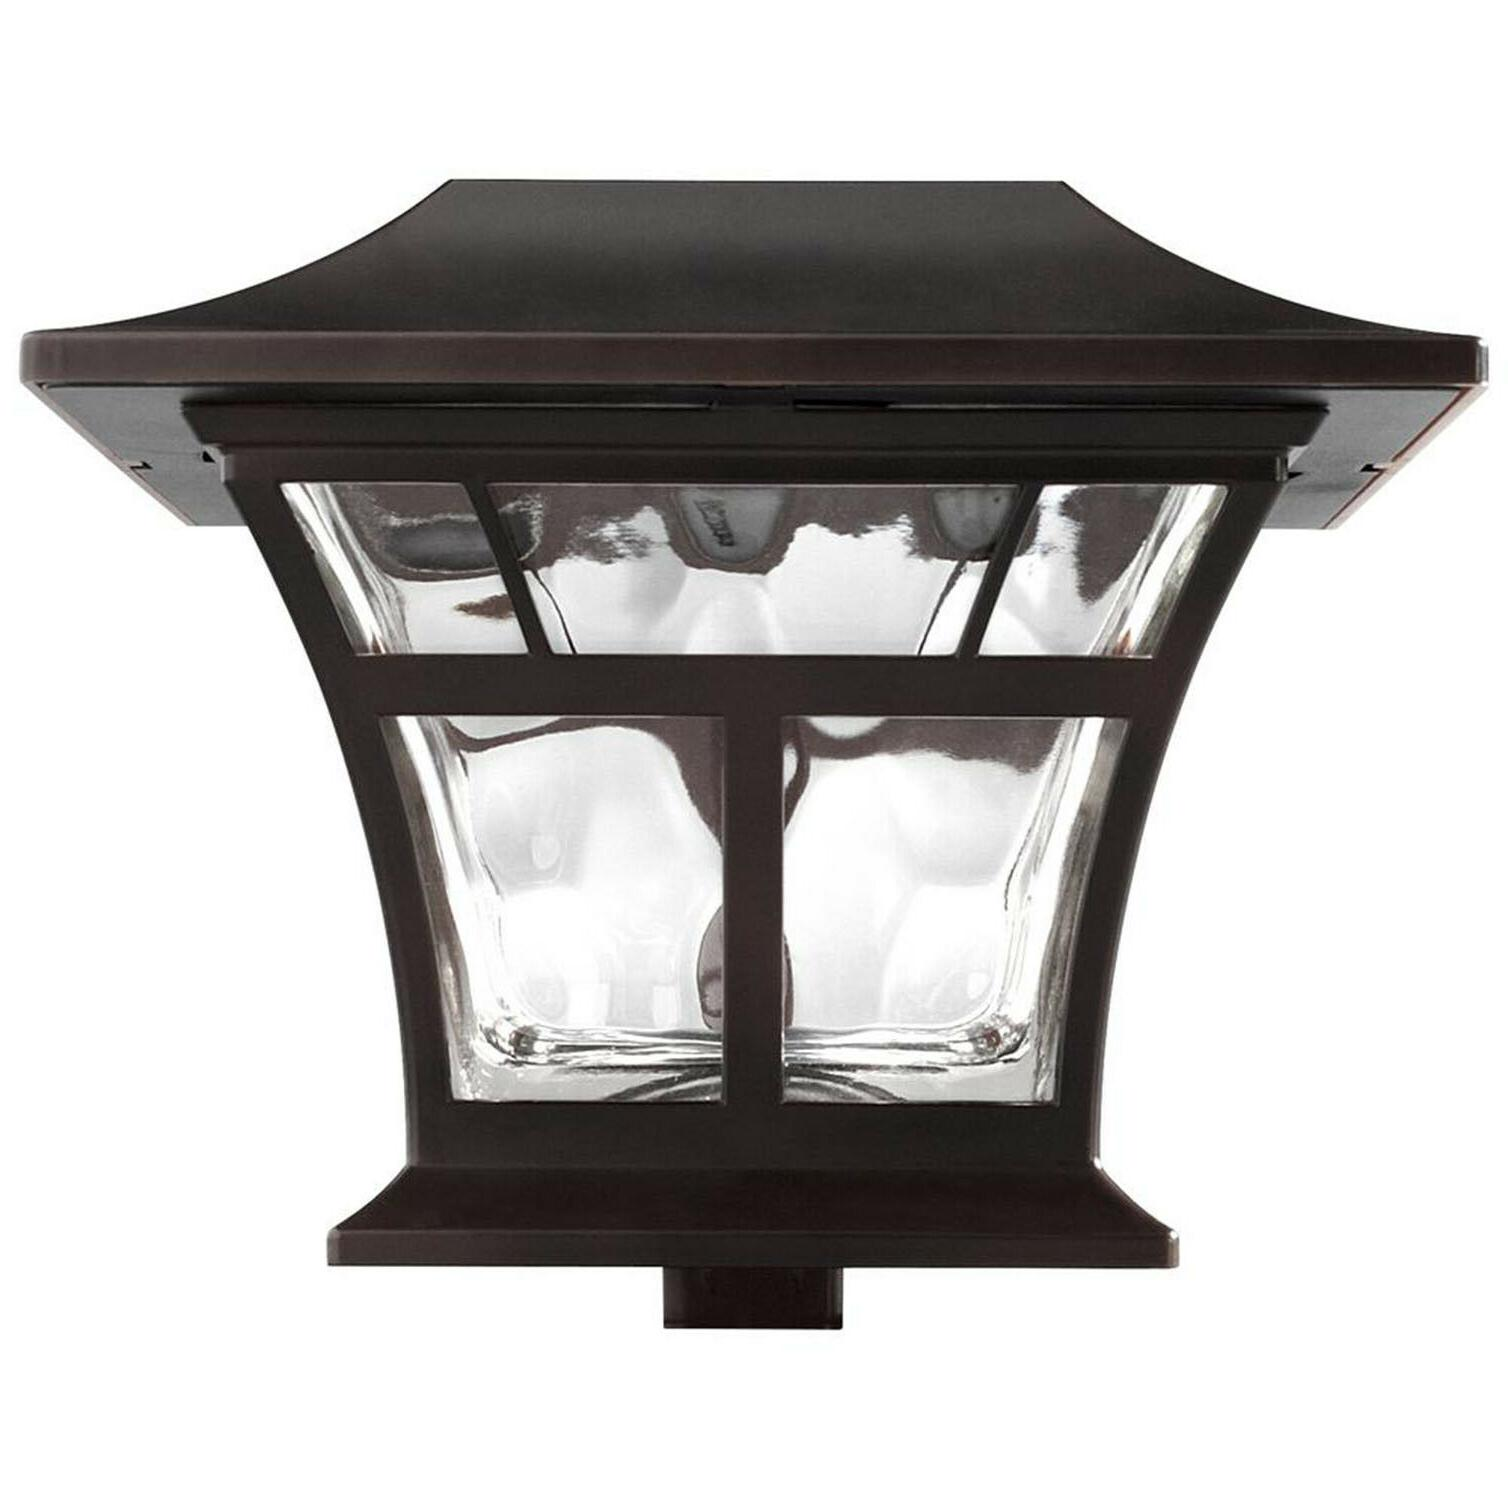 "2-PACK LED DECK POST 4""x4"" Outdoor Garden"